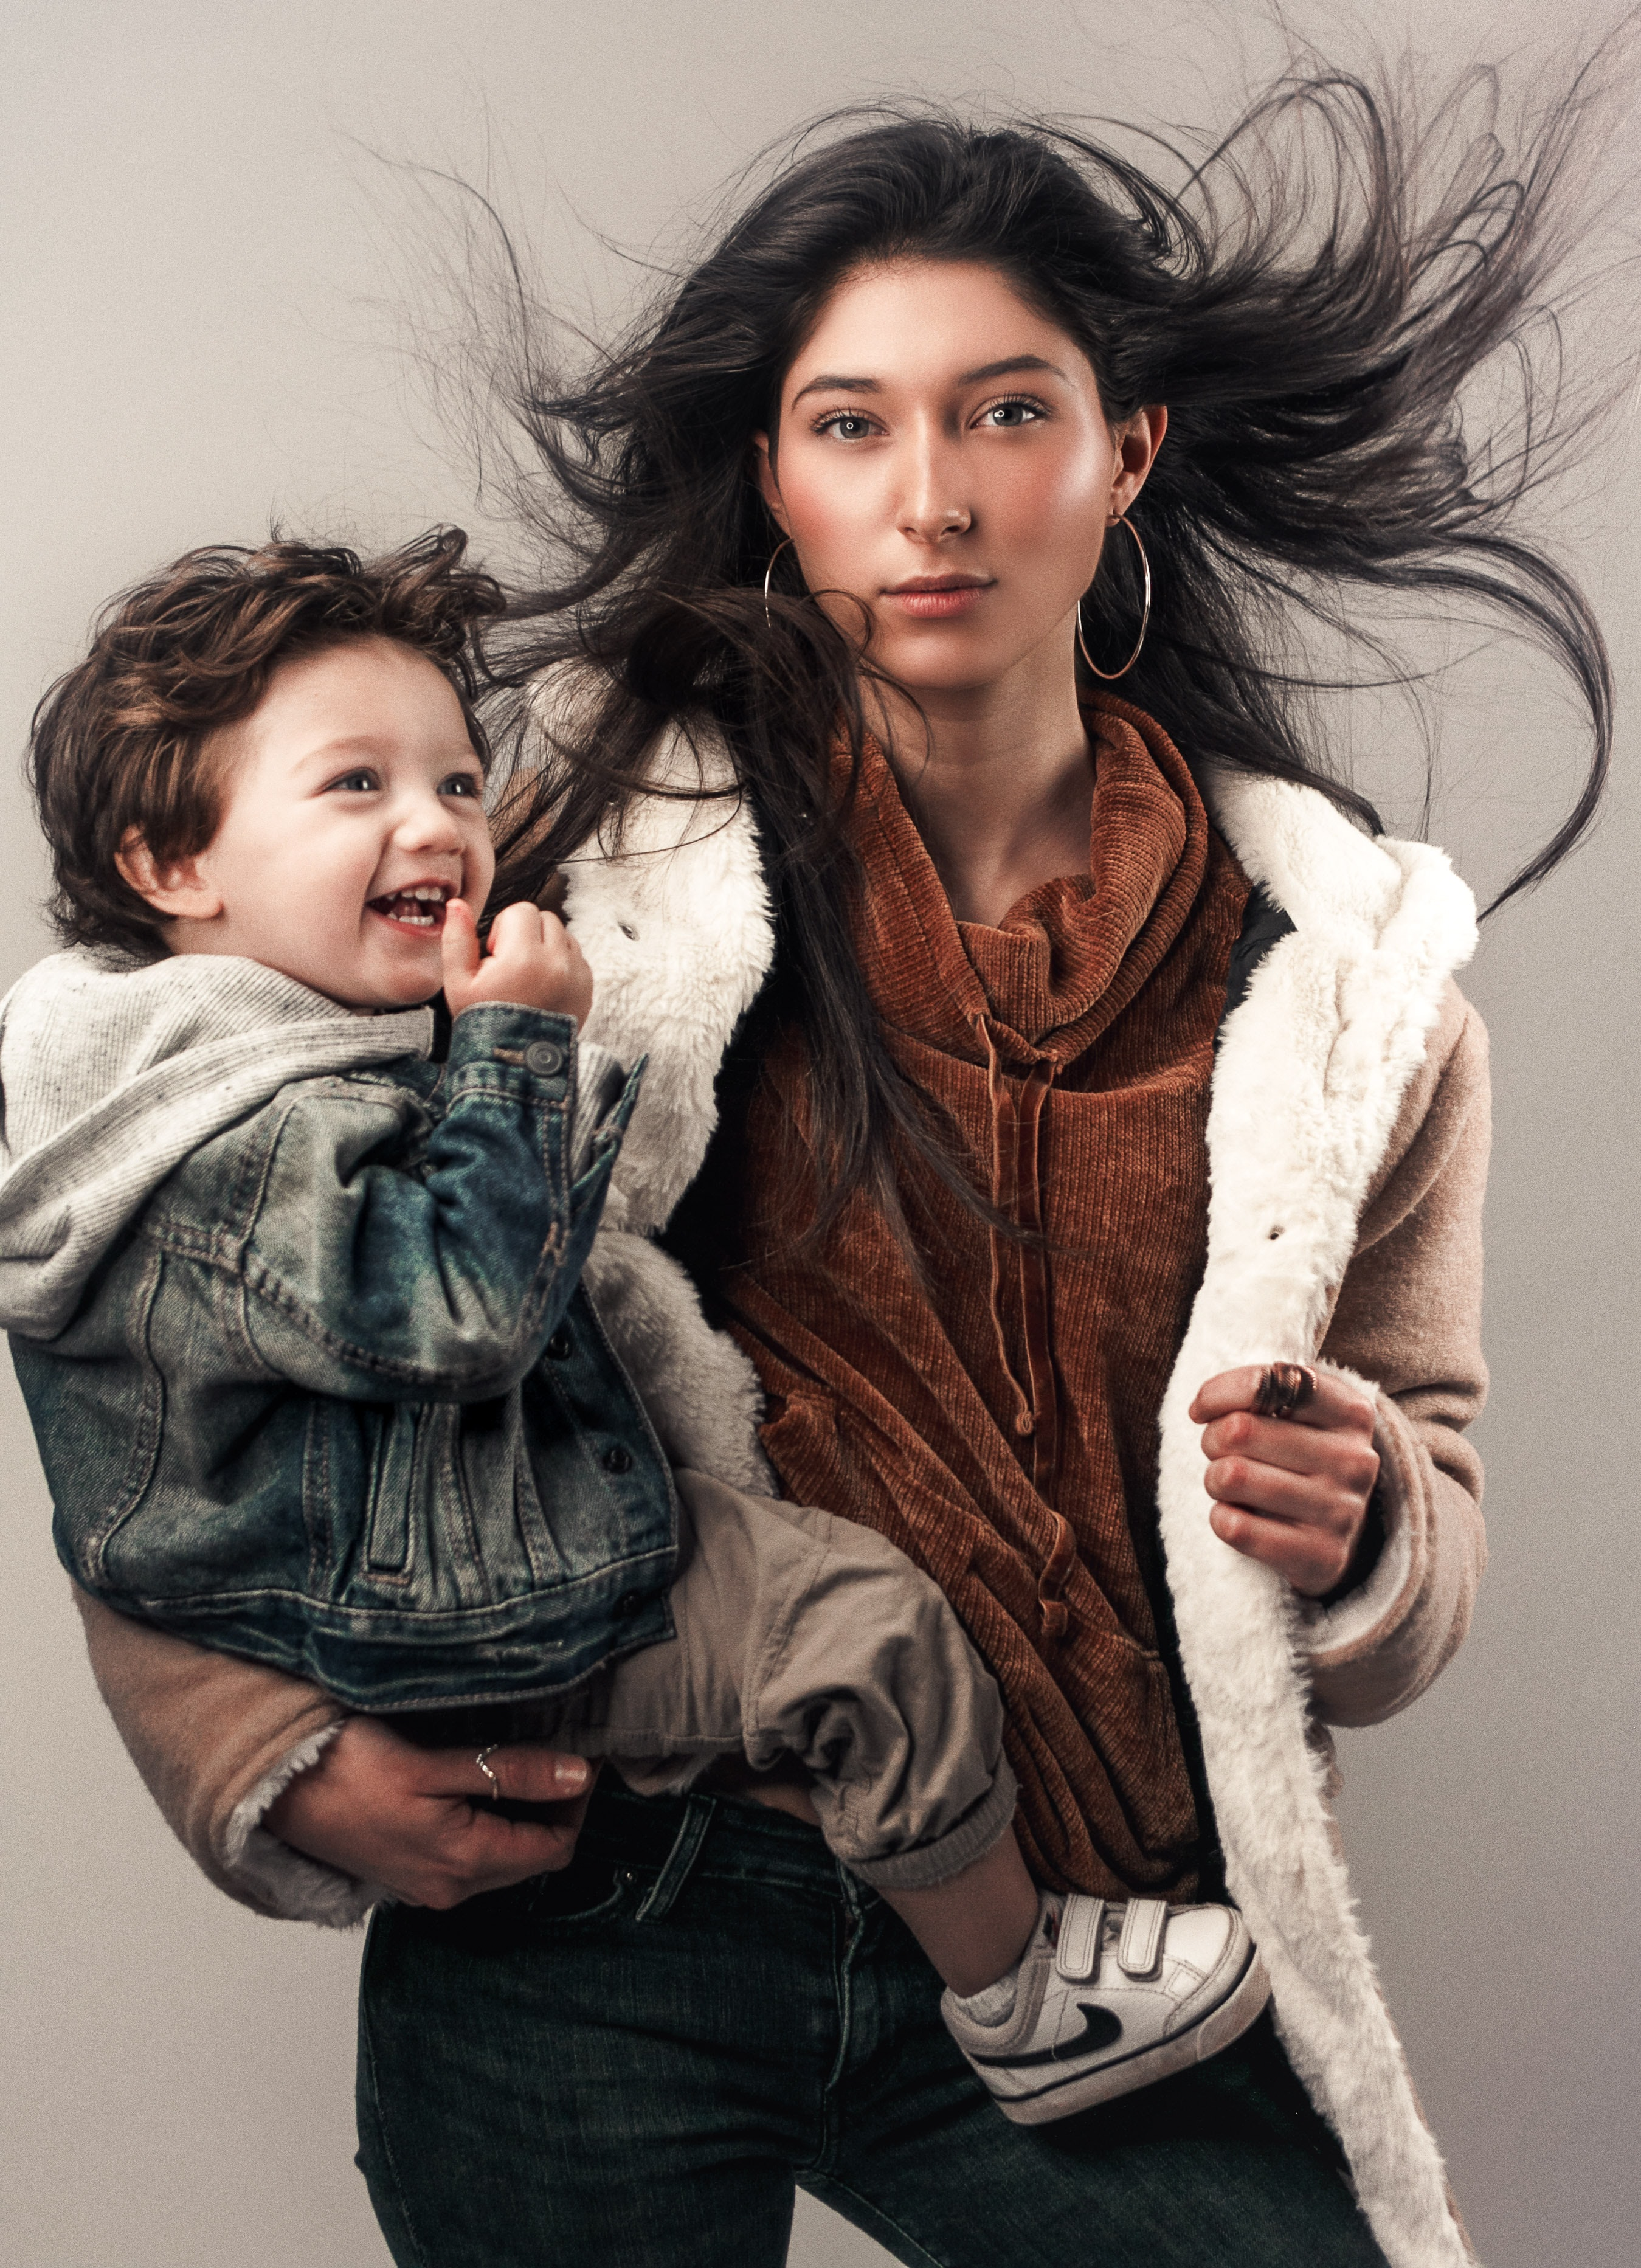 woman wearing white and brown coat while carrying a baby